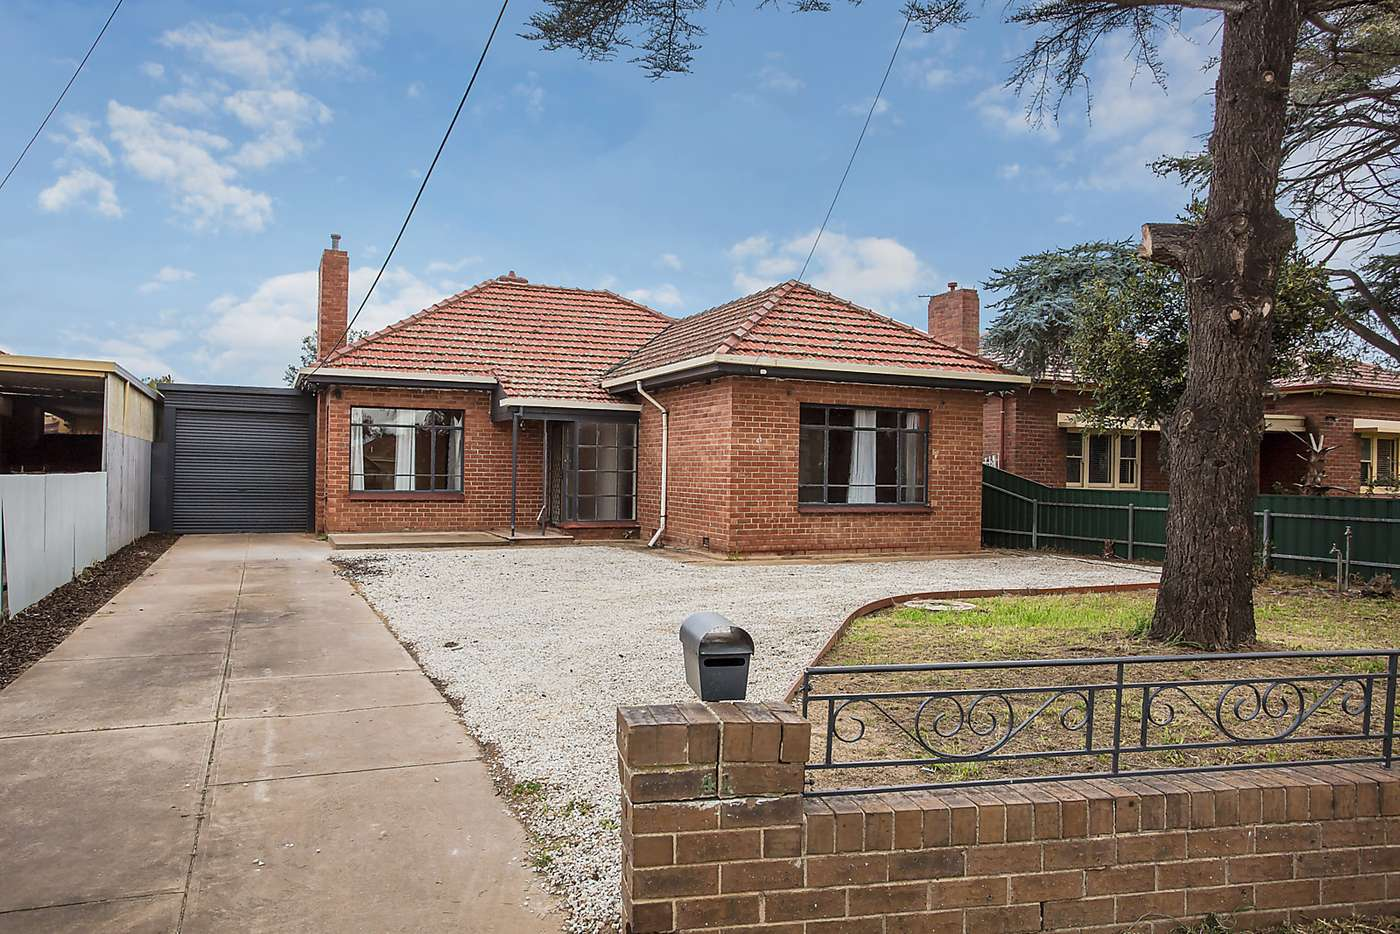 Main view of Homely house listing, 41 Glenhuntley Street, Woodville South SA 5011